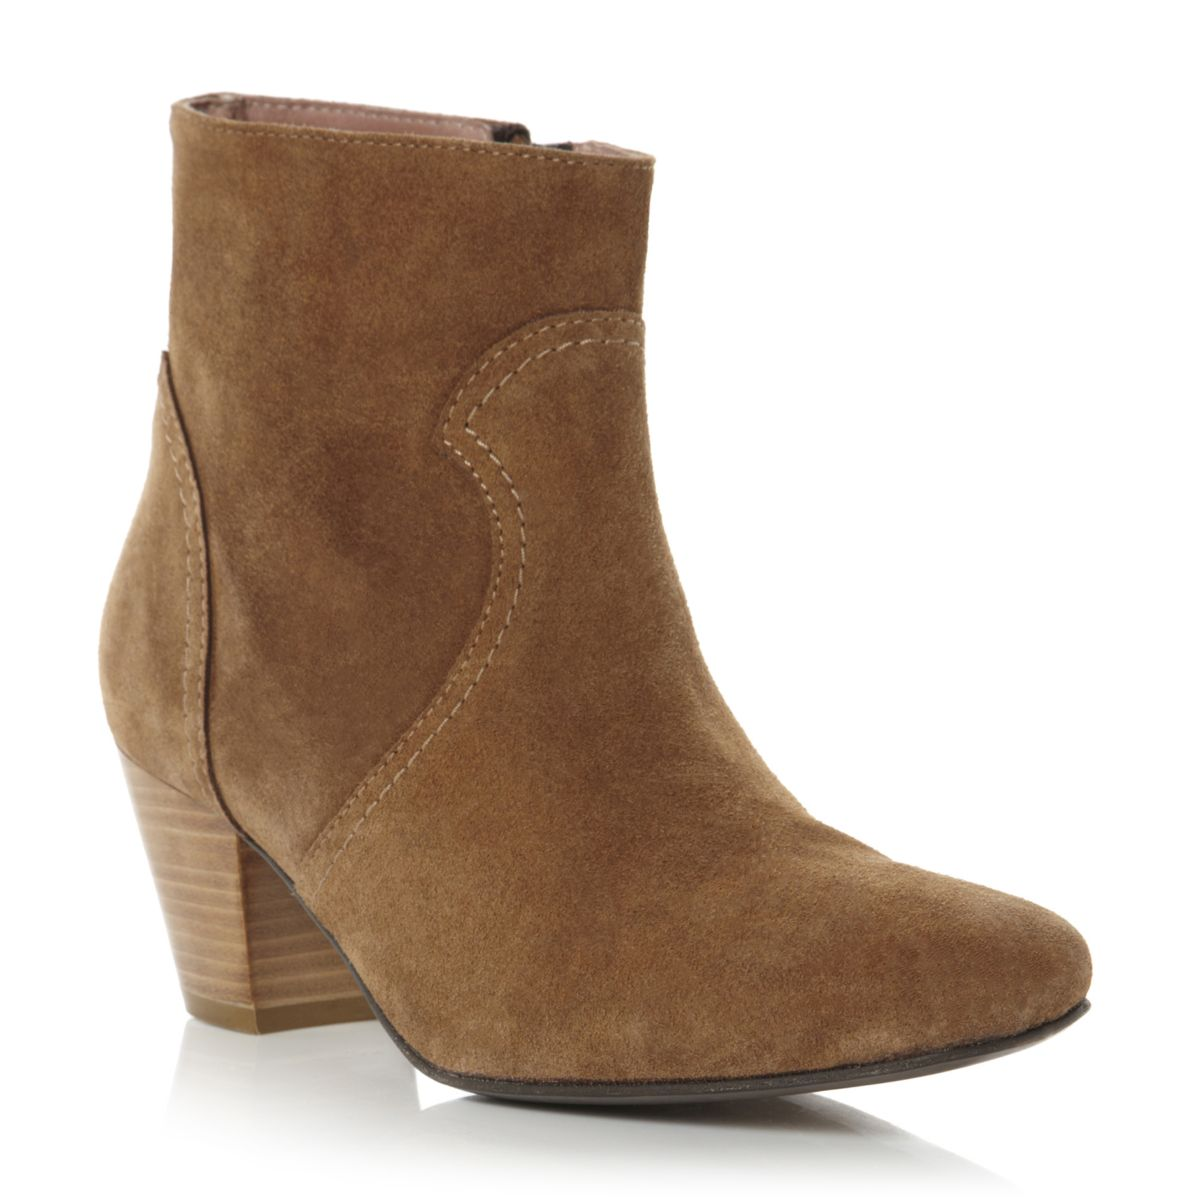 NEW-PIED-A-TERRE-LADIES-OZORA-WOMENS-TAN-BROWN-BLOCK-HEEL-ANKLE-BOOTS-SIZE-3-8